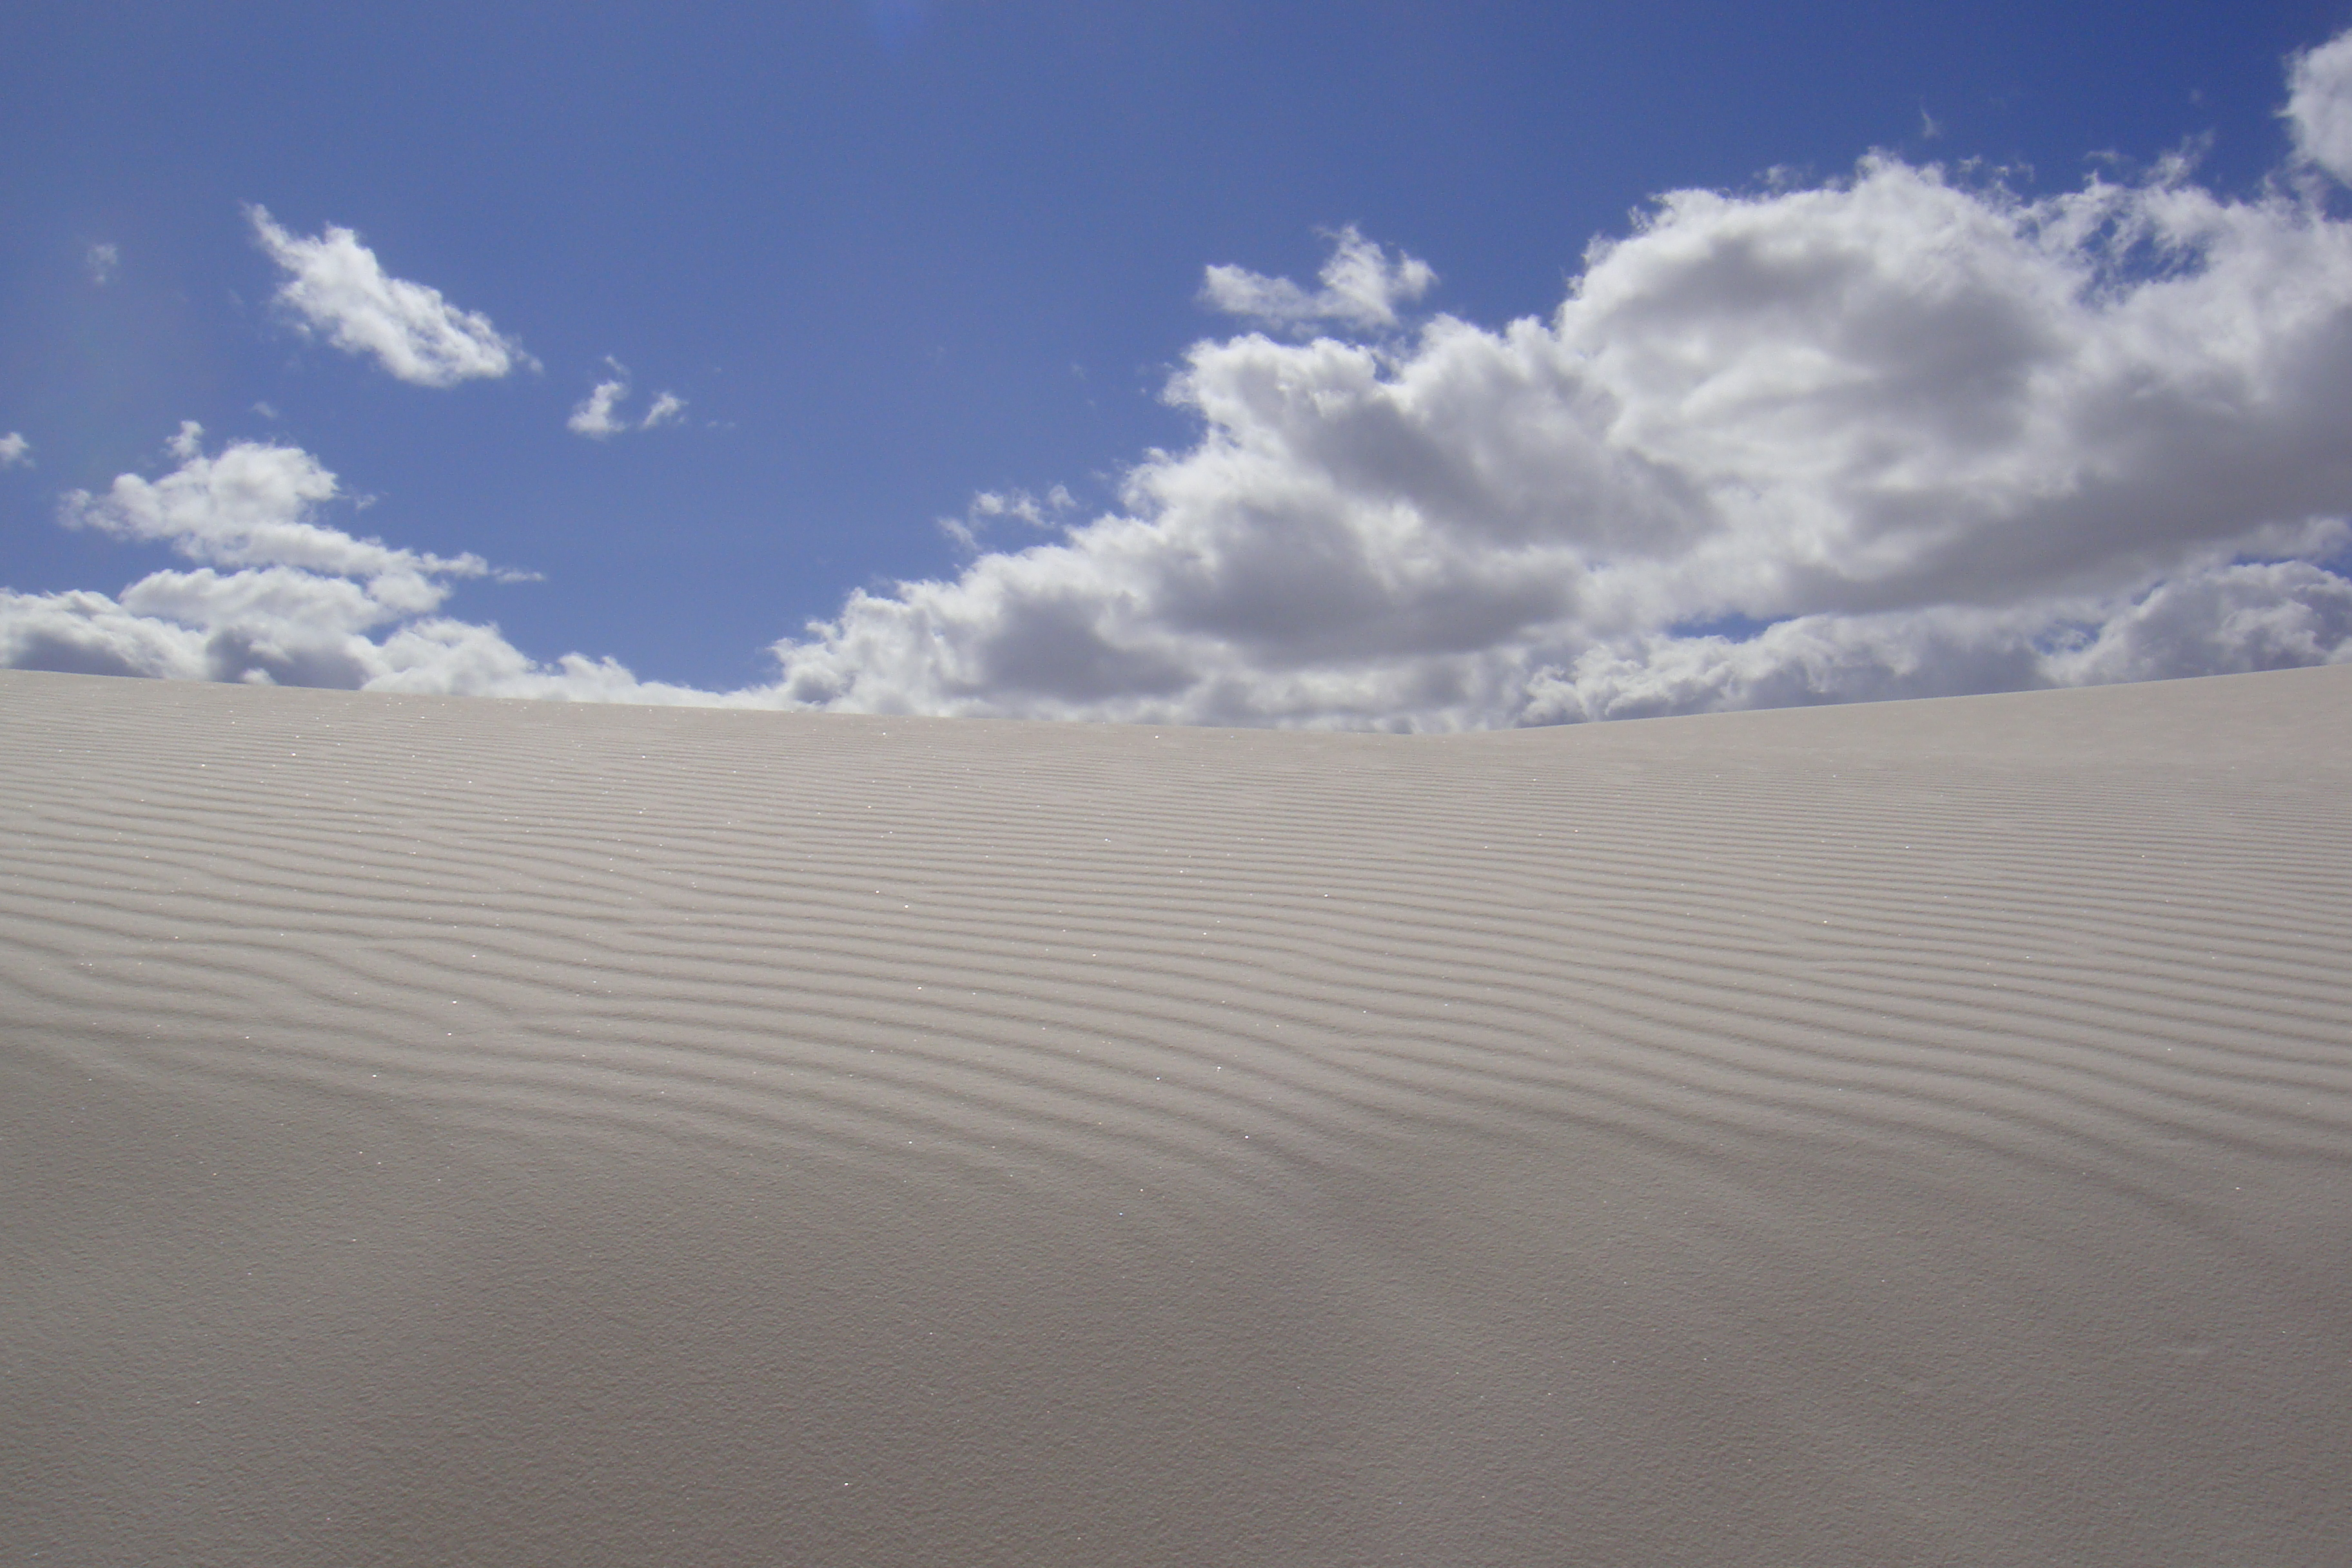 The dune is made of white sand